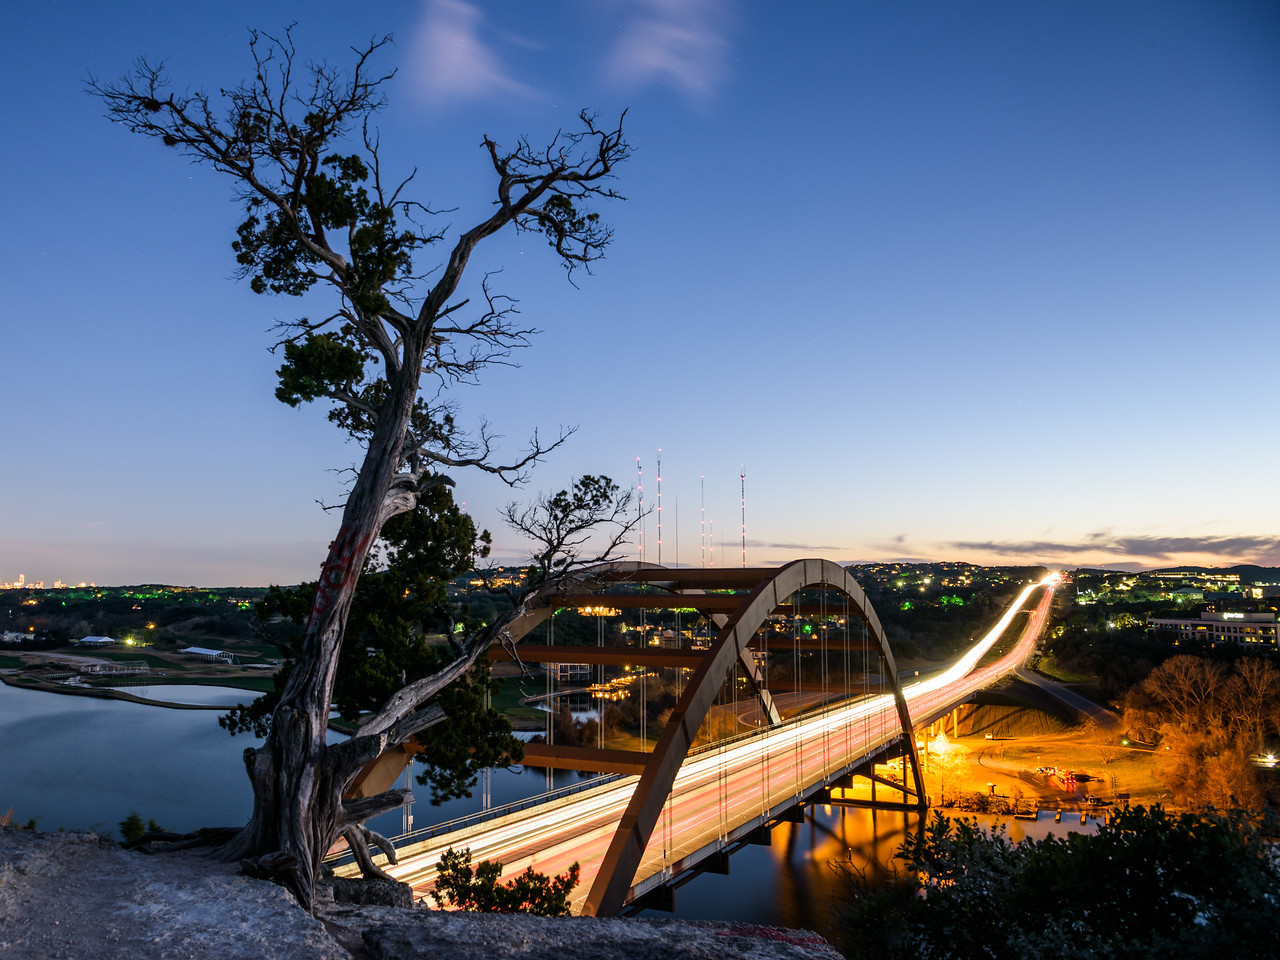 Pennybacker Bridge Overlook